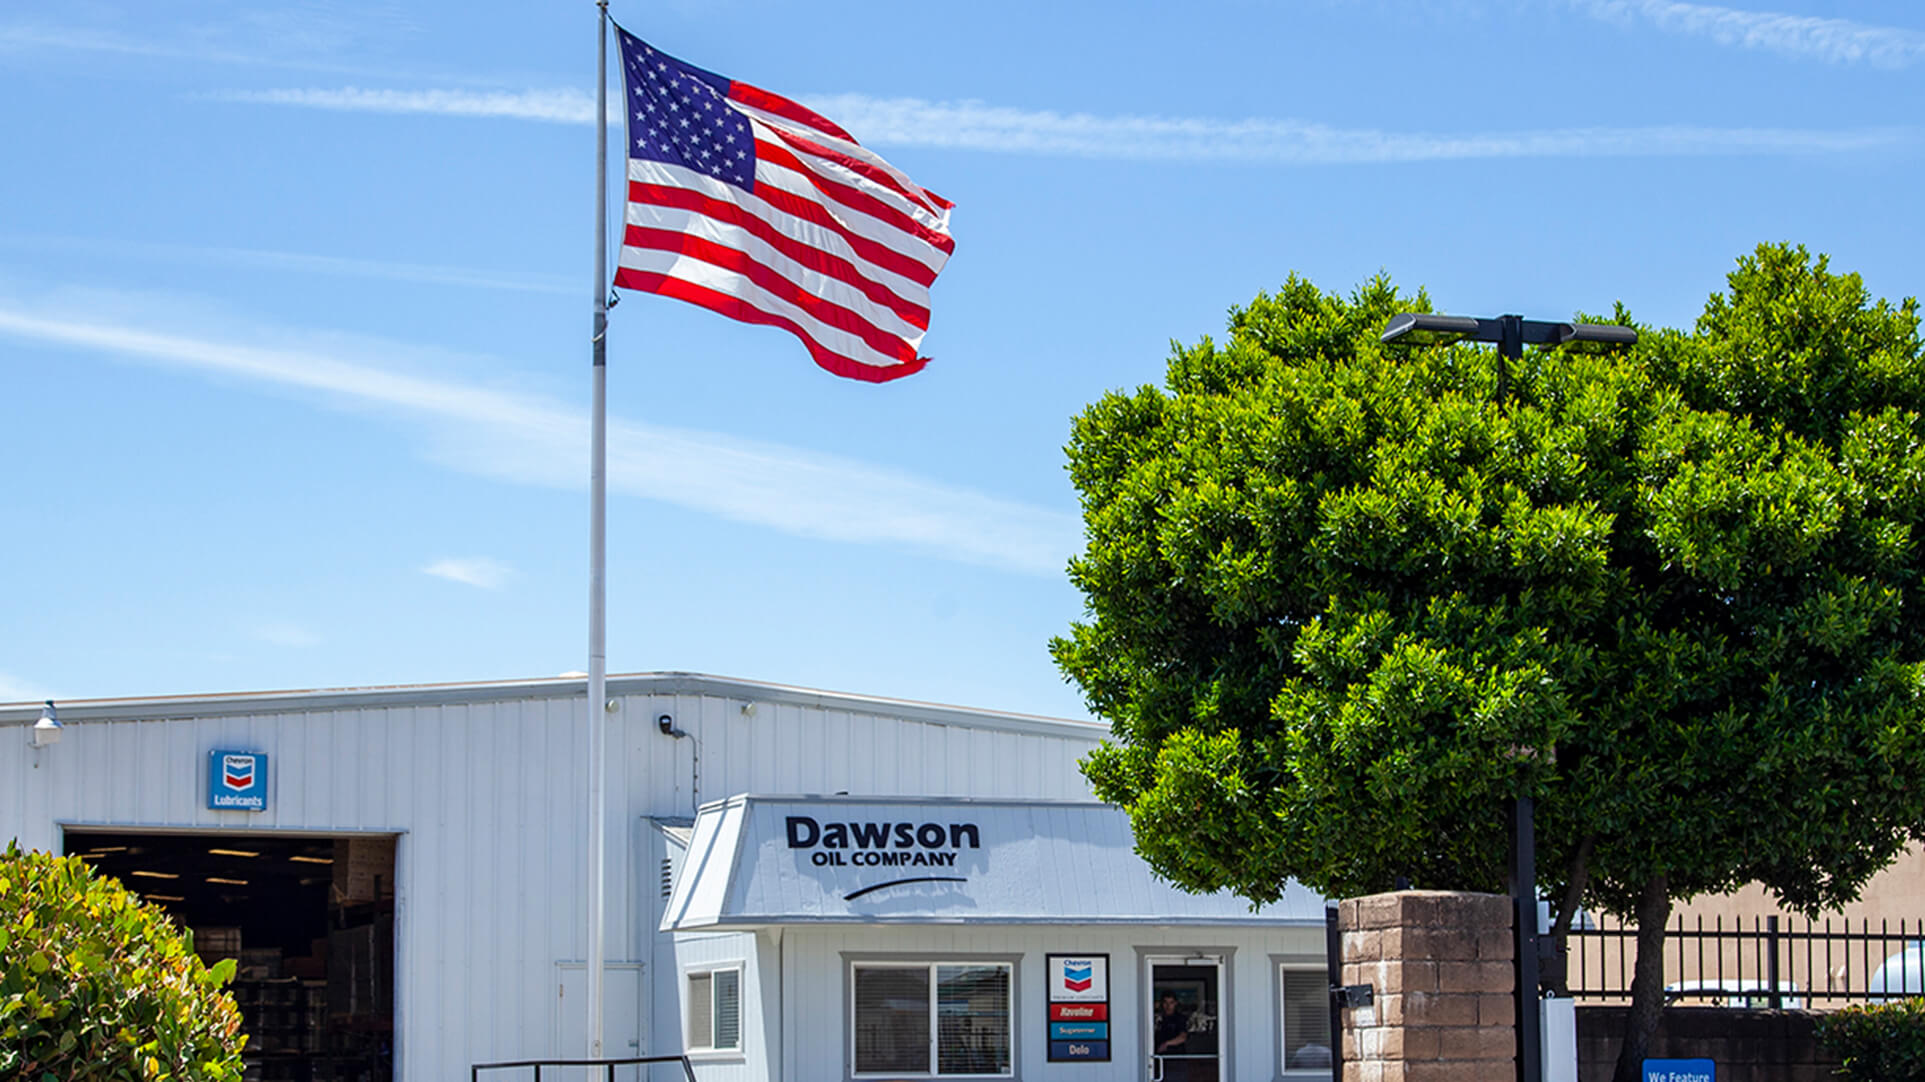 An image of the Dawson Oil location in Yuba City, California on Industrial Boulevard